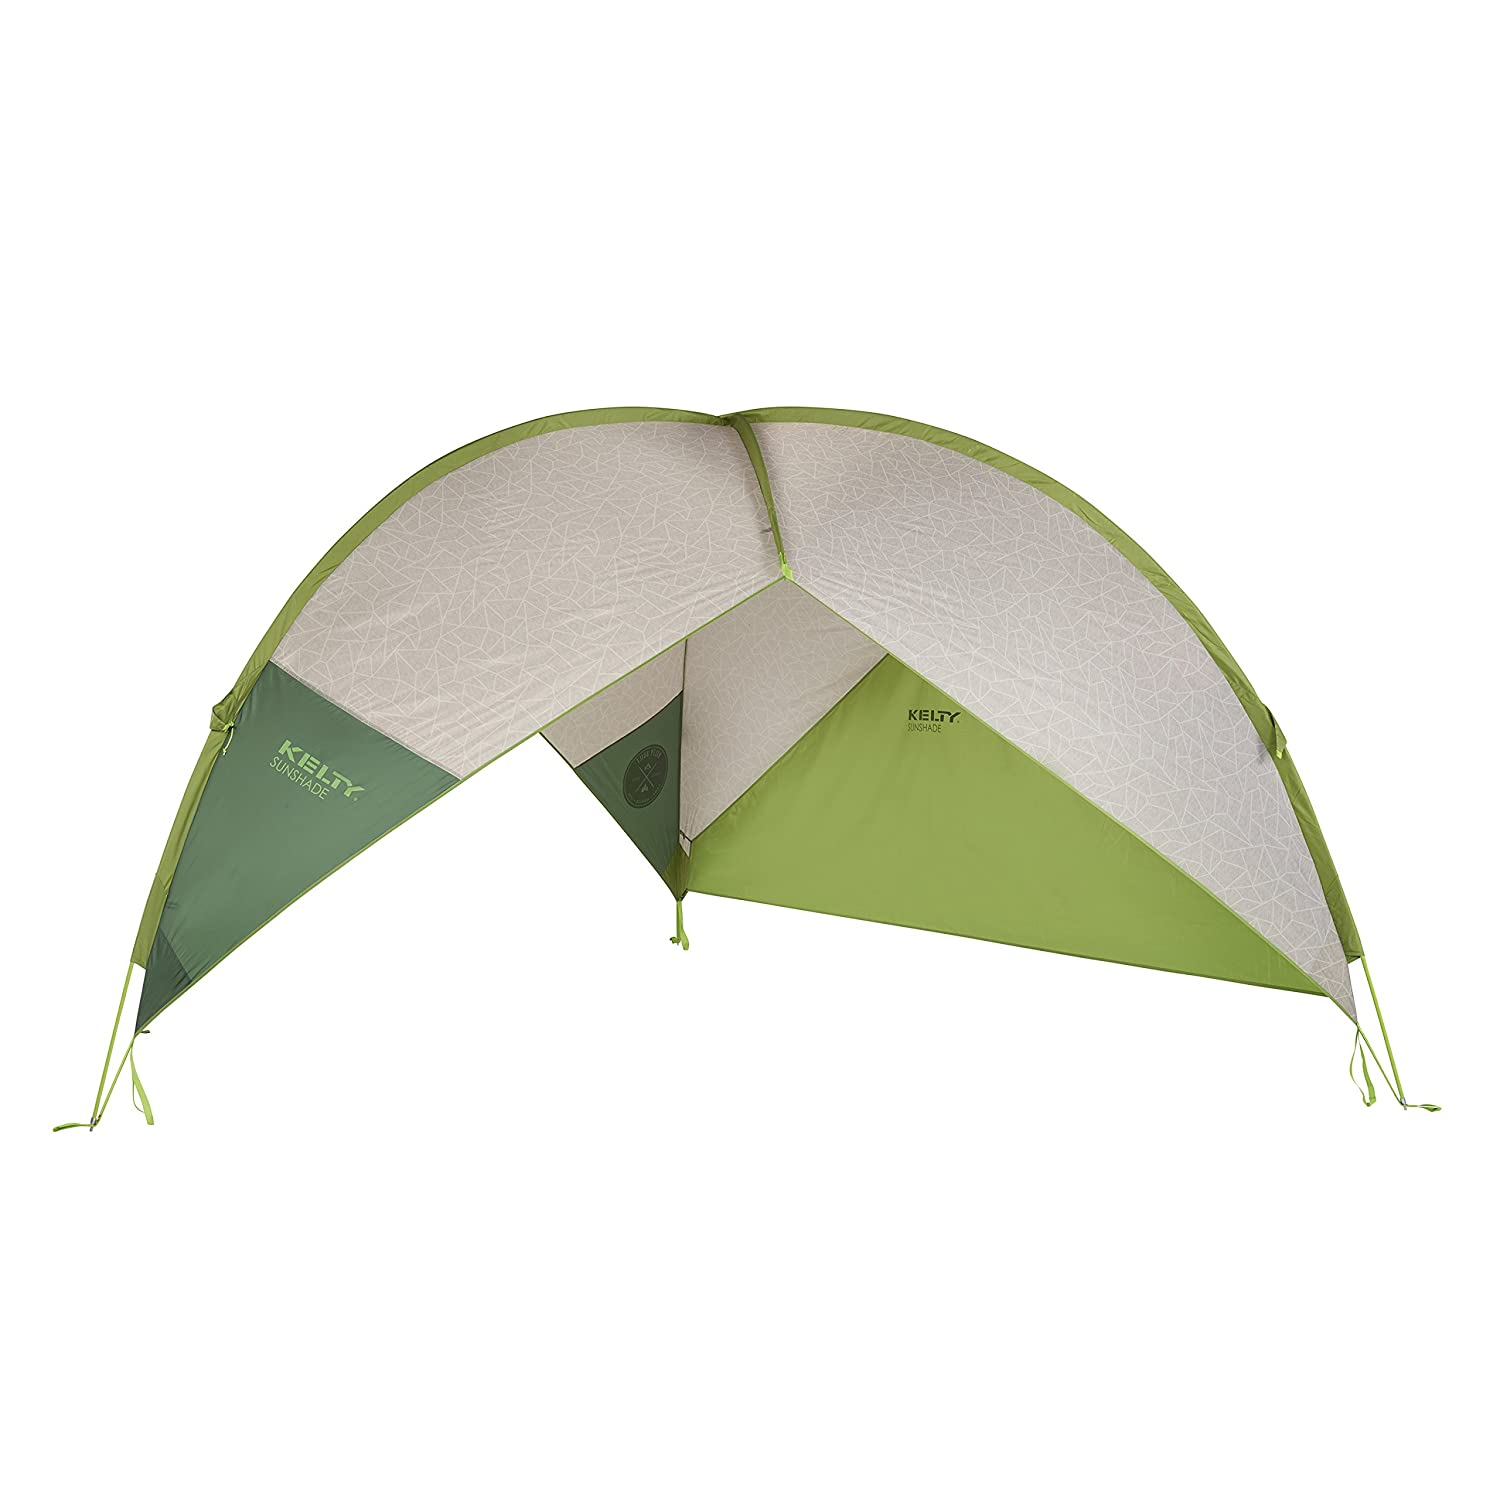 Pop Up Quick Canopy Shade Tent Kelty Sunshade 2020 Update